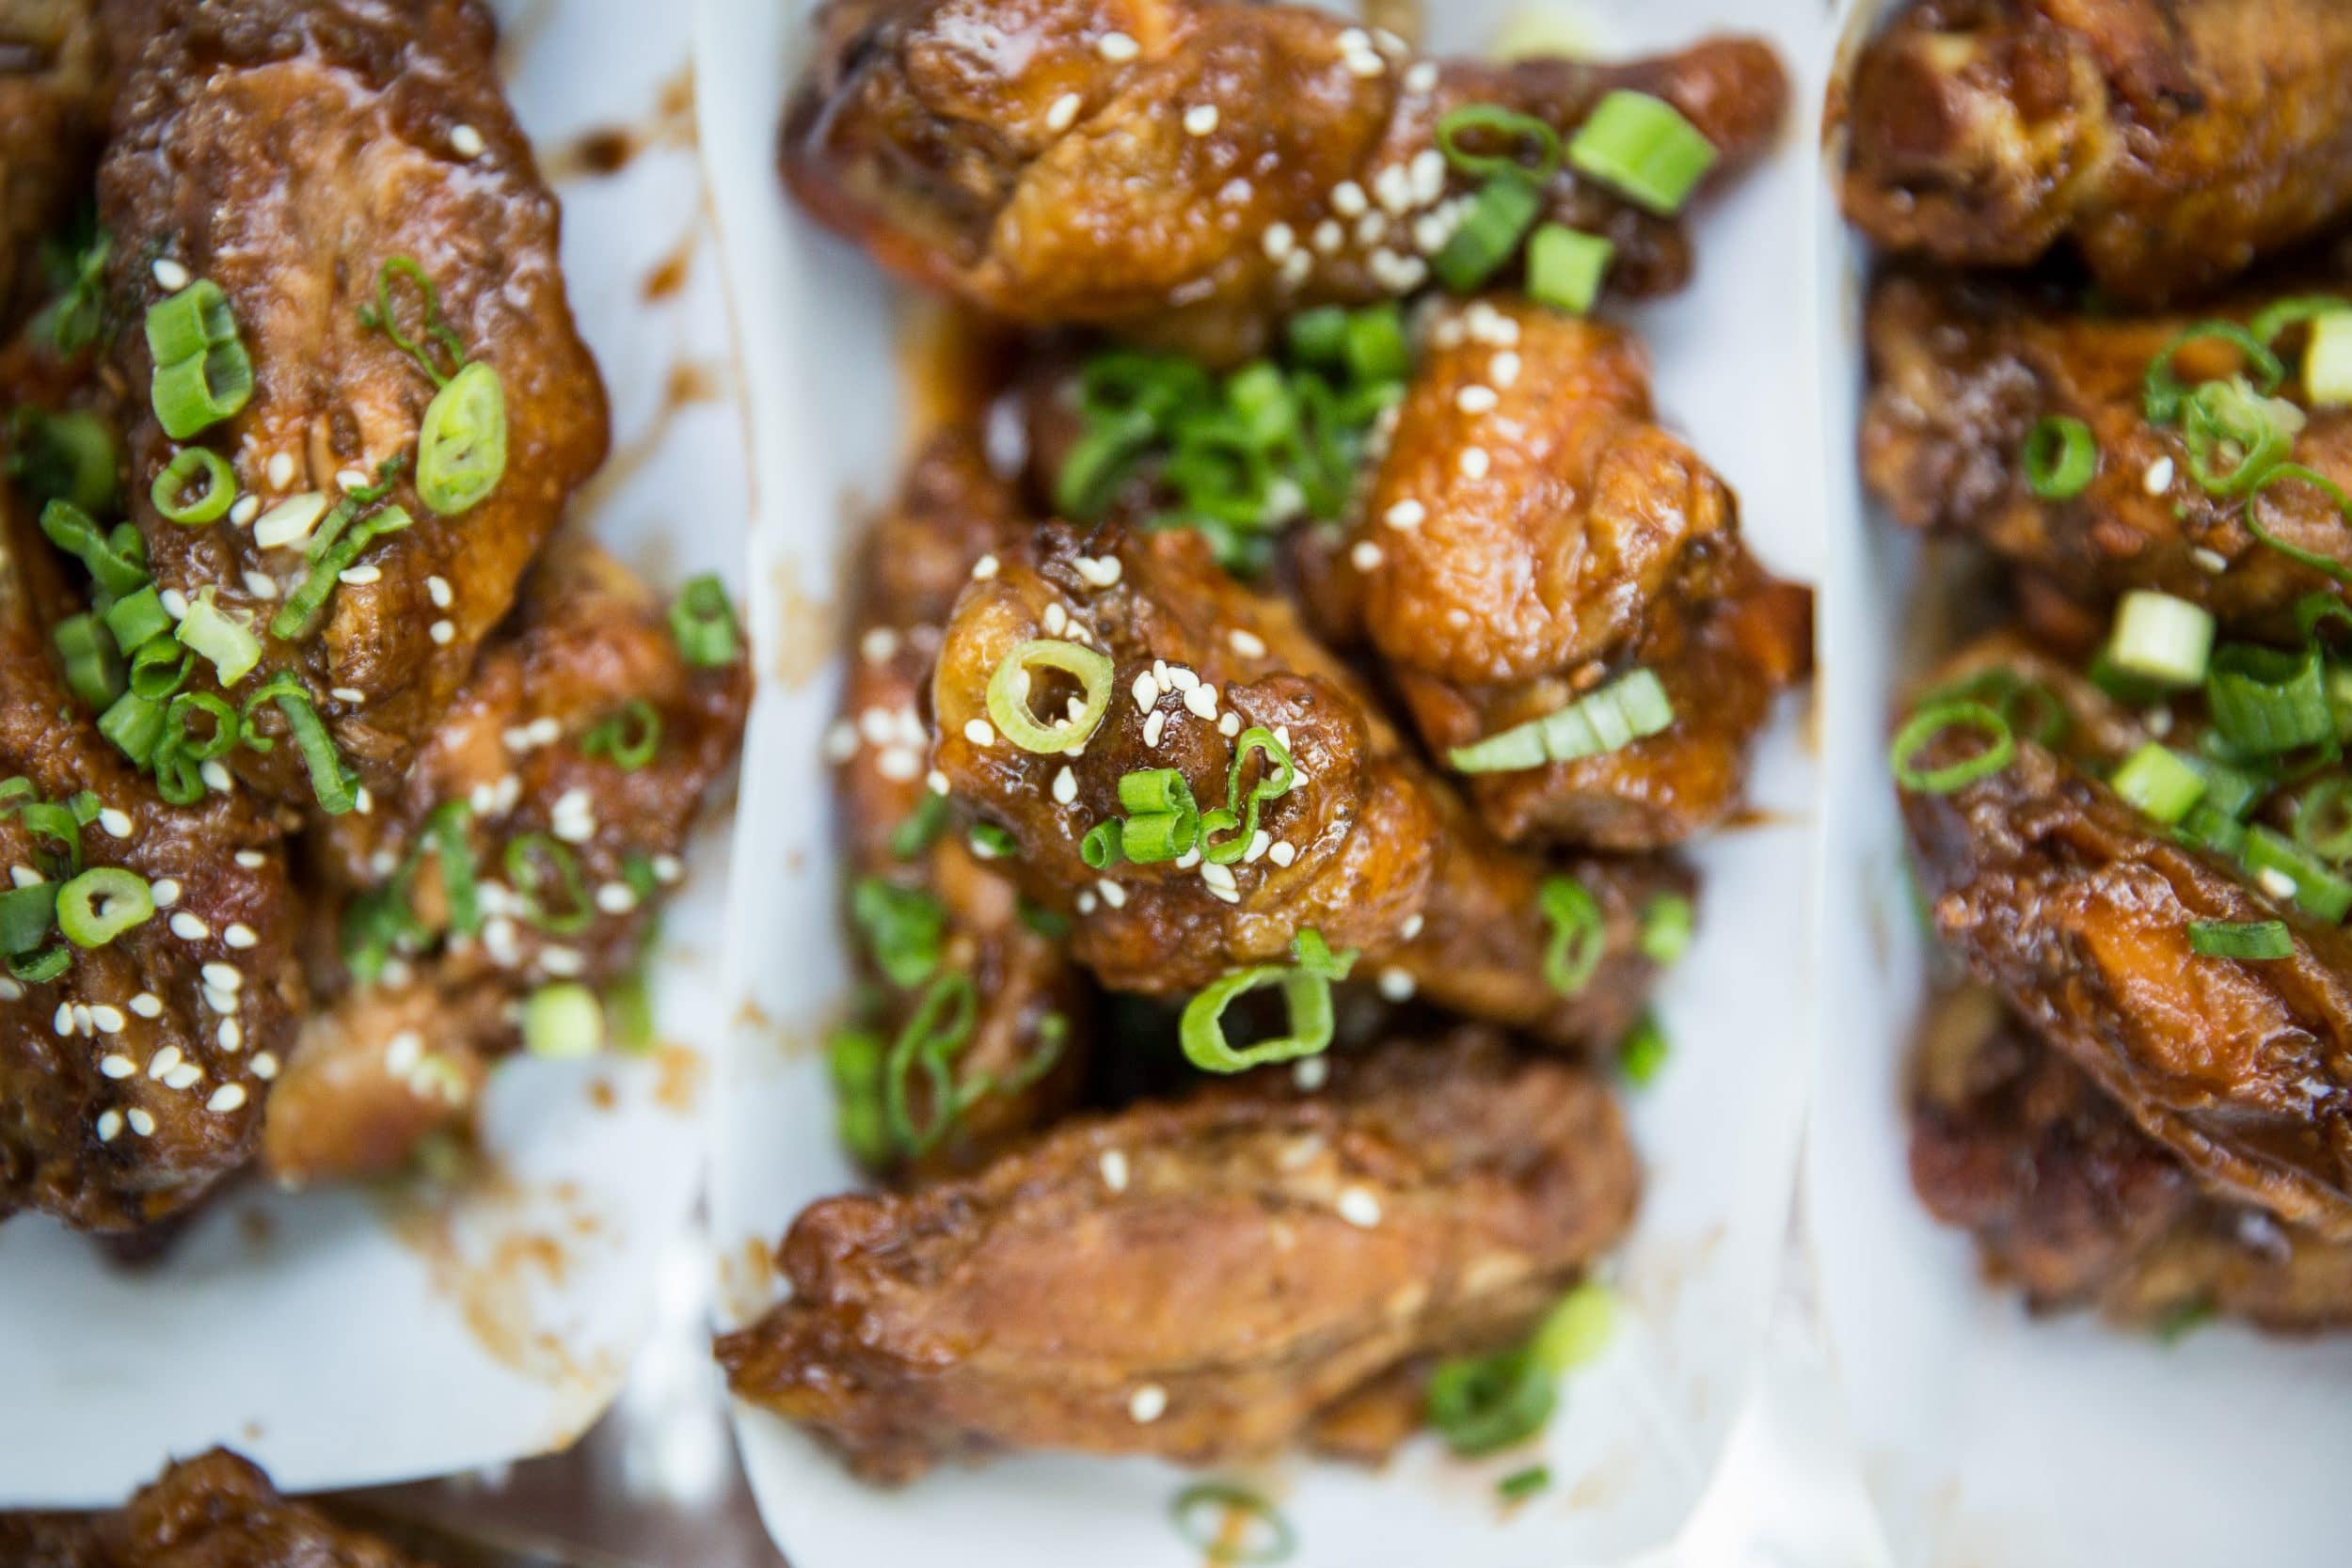 Rach's Smoked Chicken Wings with Hot Plum Sauce